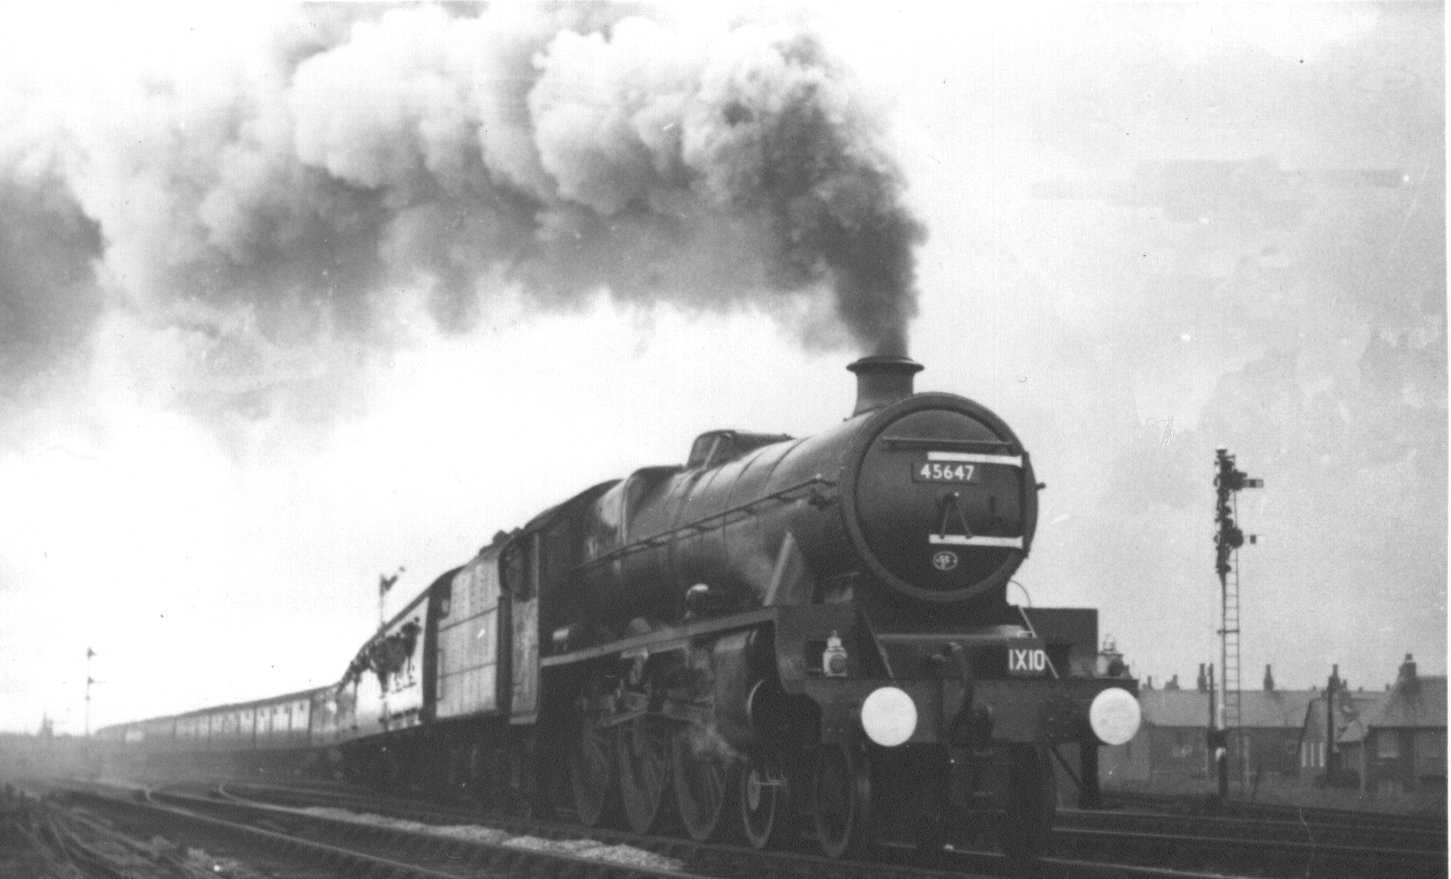 45647 Sturdee leaving Blackpool North with an excursion train, 23 October 1966